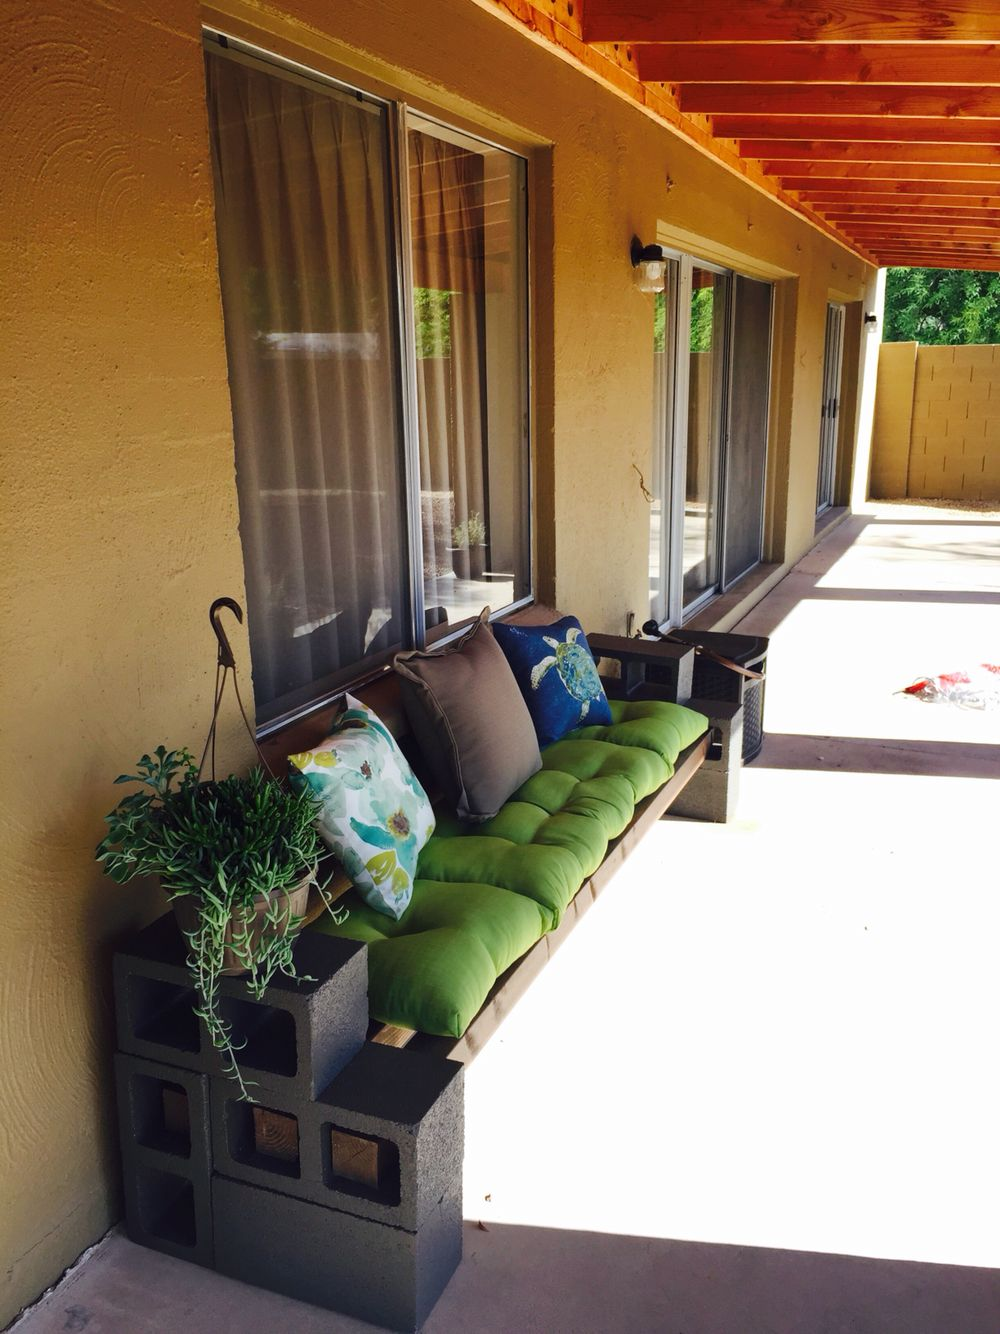 Our new cinder block bench!